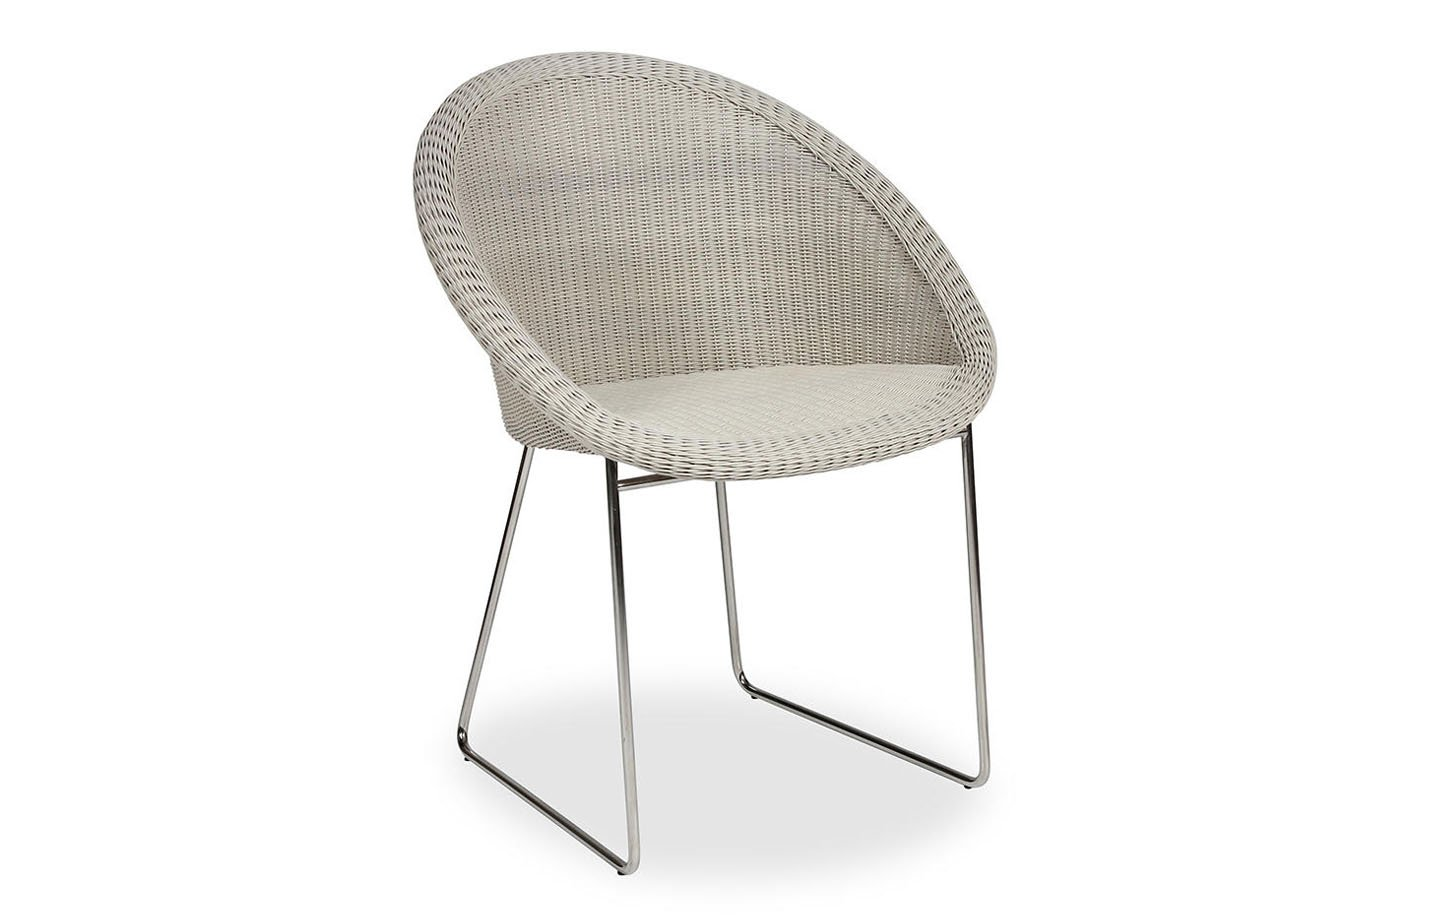 Gipsy Dining Chair Stainless Steel Sled Base by Vincent Sheppard Old lace